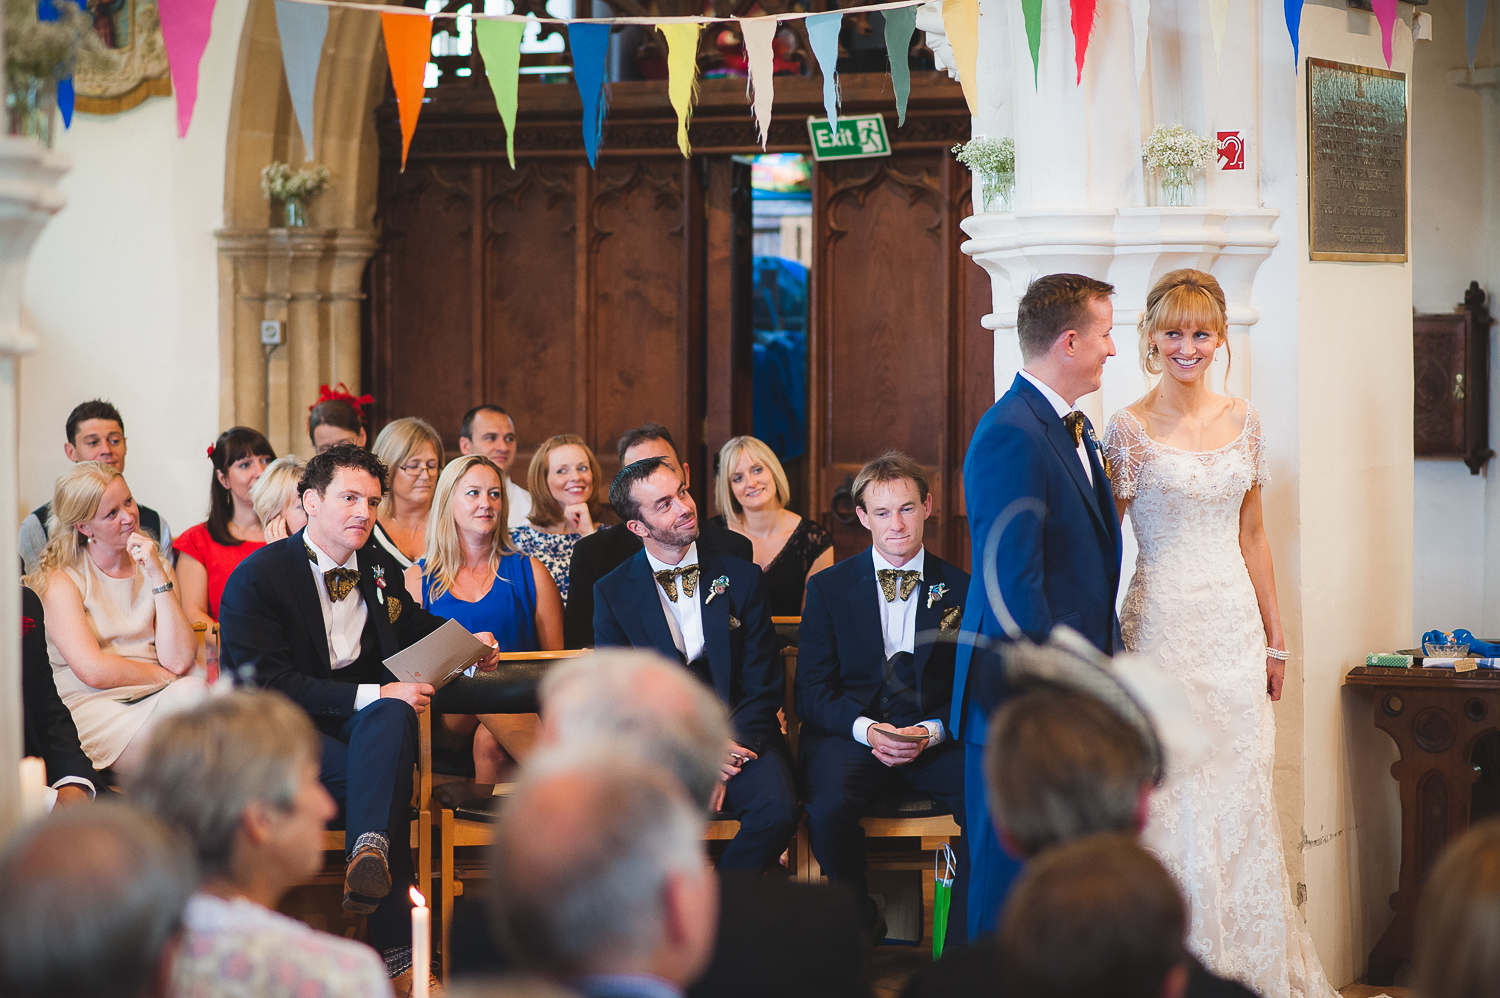 portished-wedding-photographer-court-farm-country-park-3.jpg